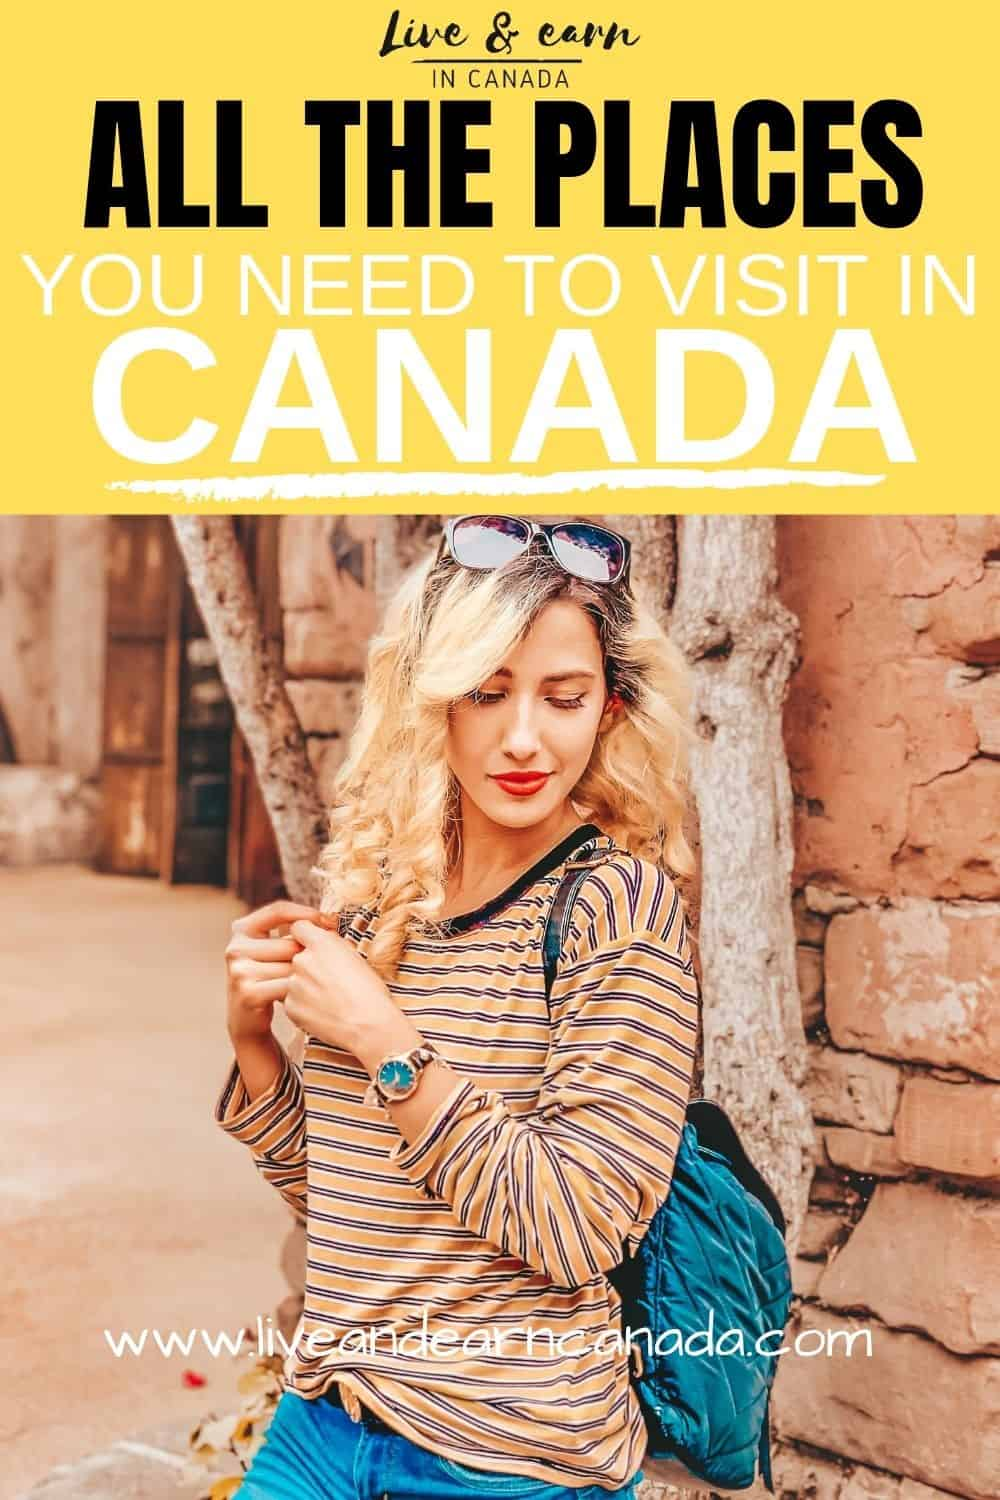 Here is everything you need to know about visiting Canada and all the provinces. Want to travel to Canada, here are the tips to follow #visitingCanada #ExploreCanada #Canadaprovinces #ThingstodoinCanada